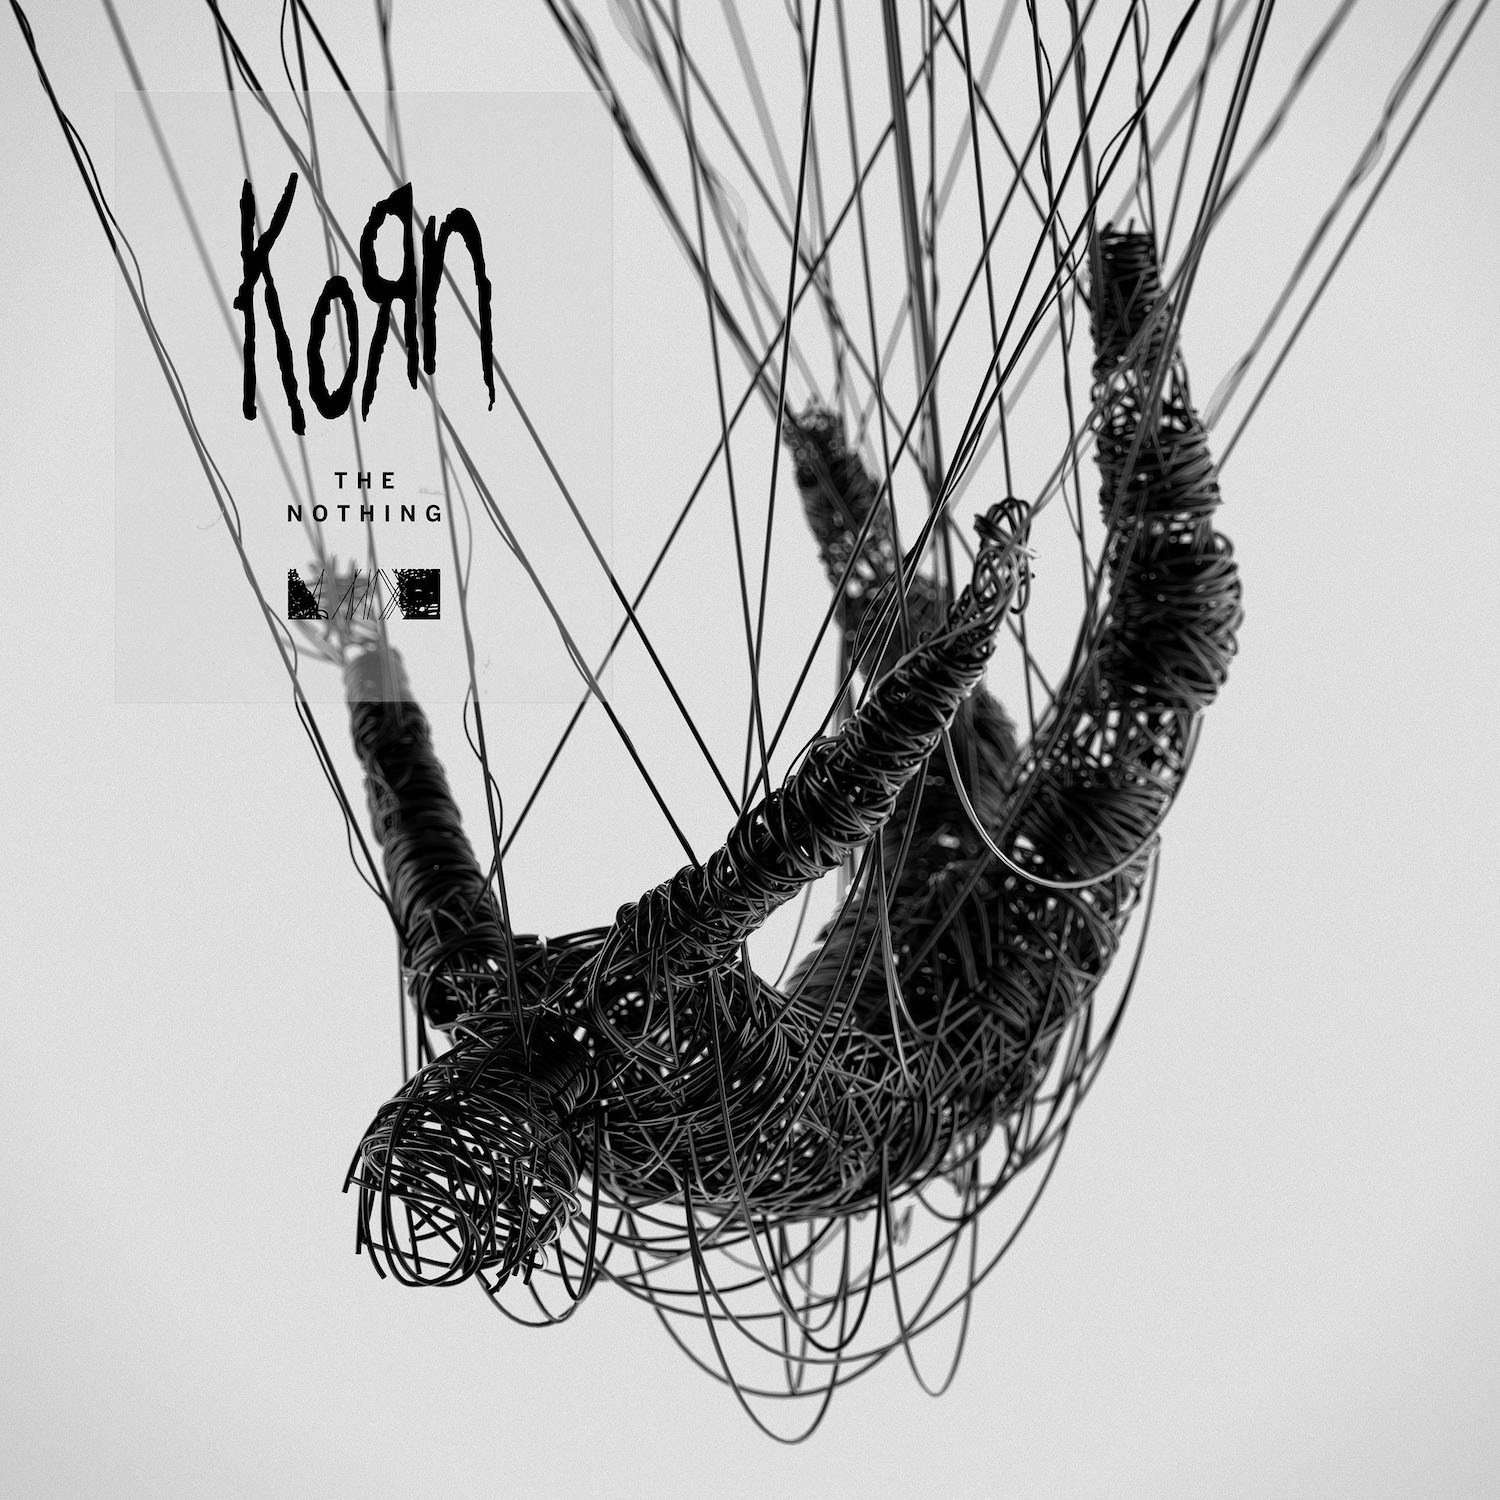 KoRn – The Nothing (Nuevo disco) #TemitaDelViernes